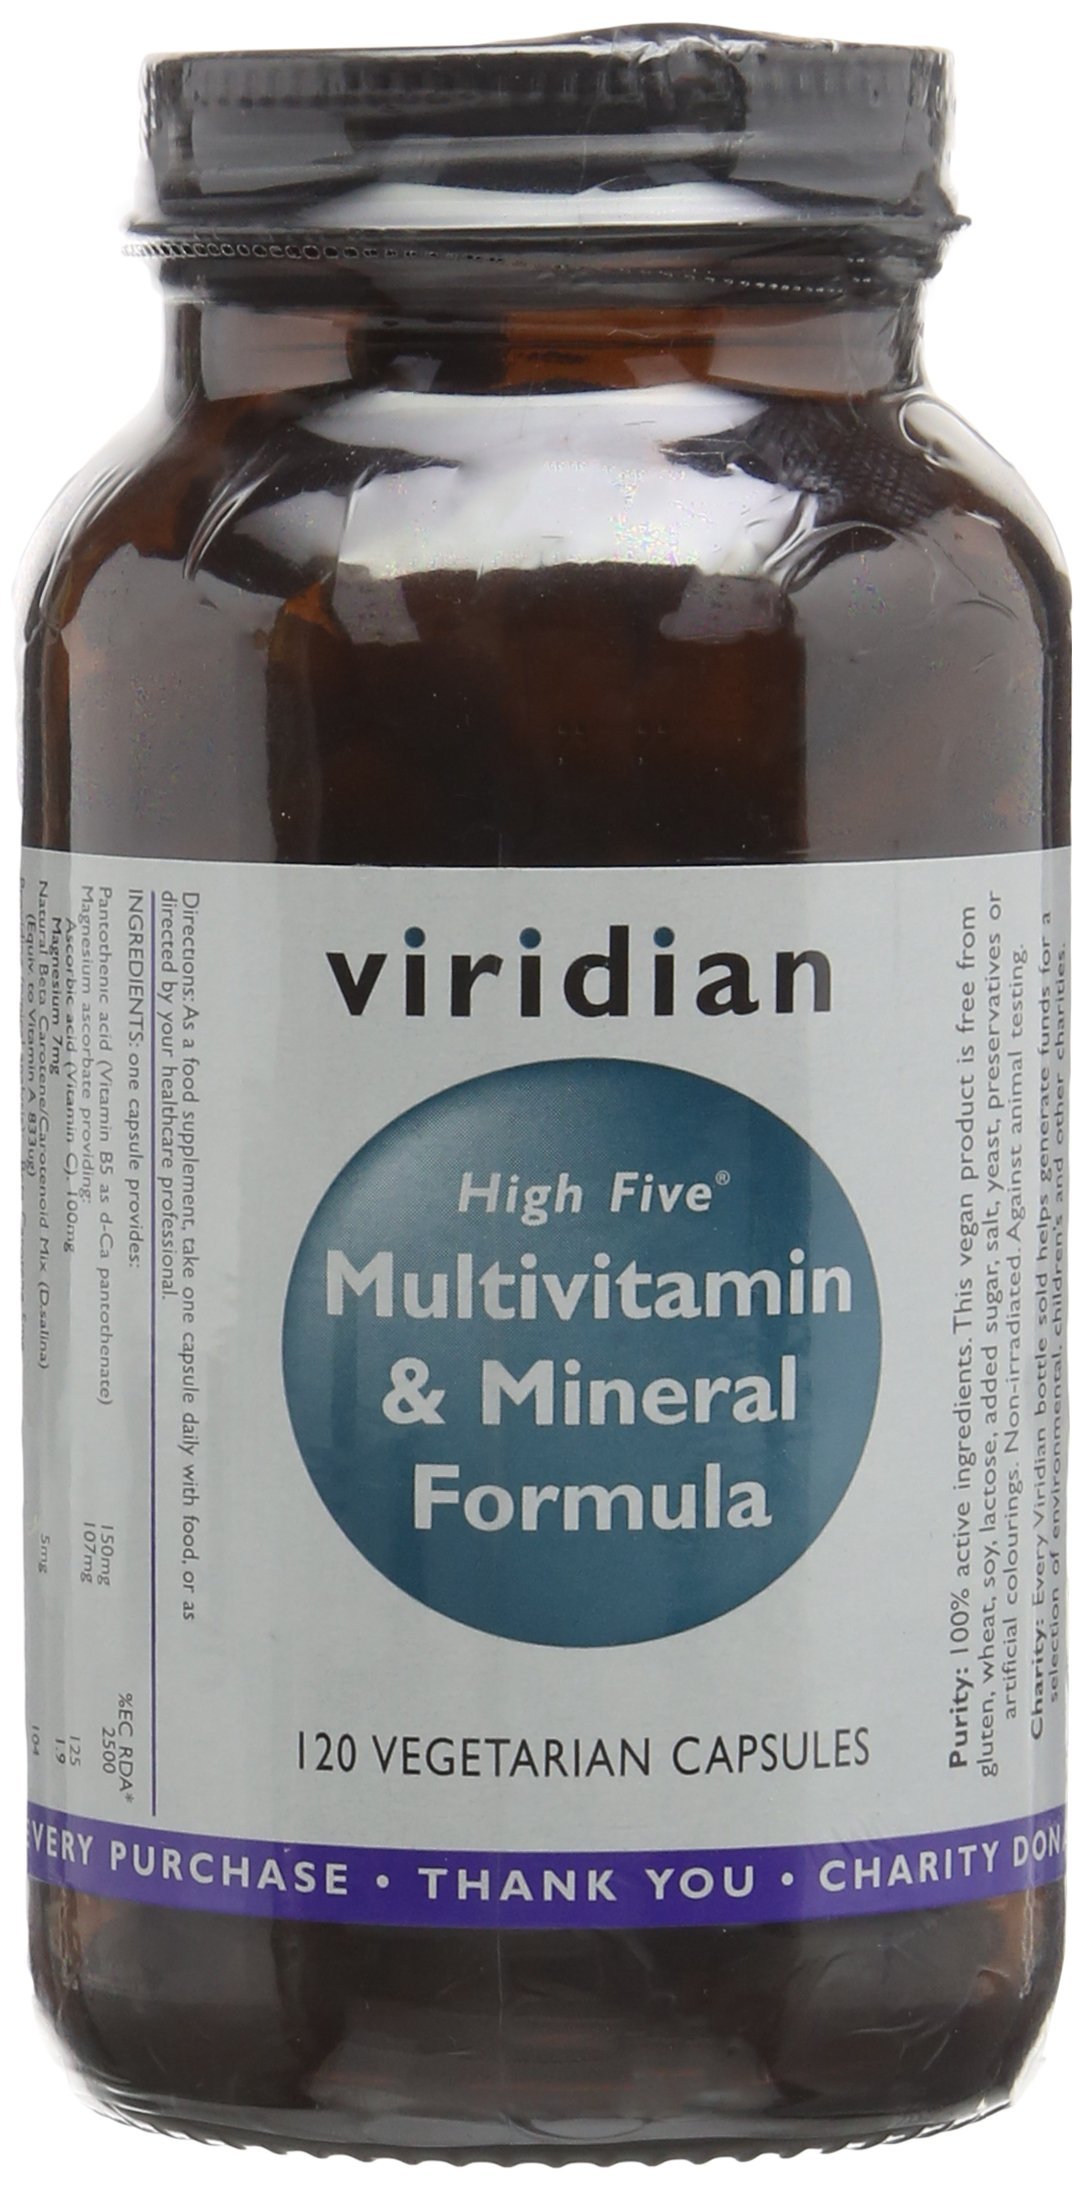 Viridian High Five Multivitamin & Mineral Formula 120 Veg Caps